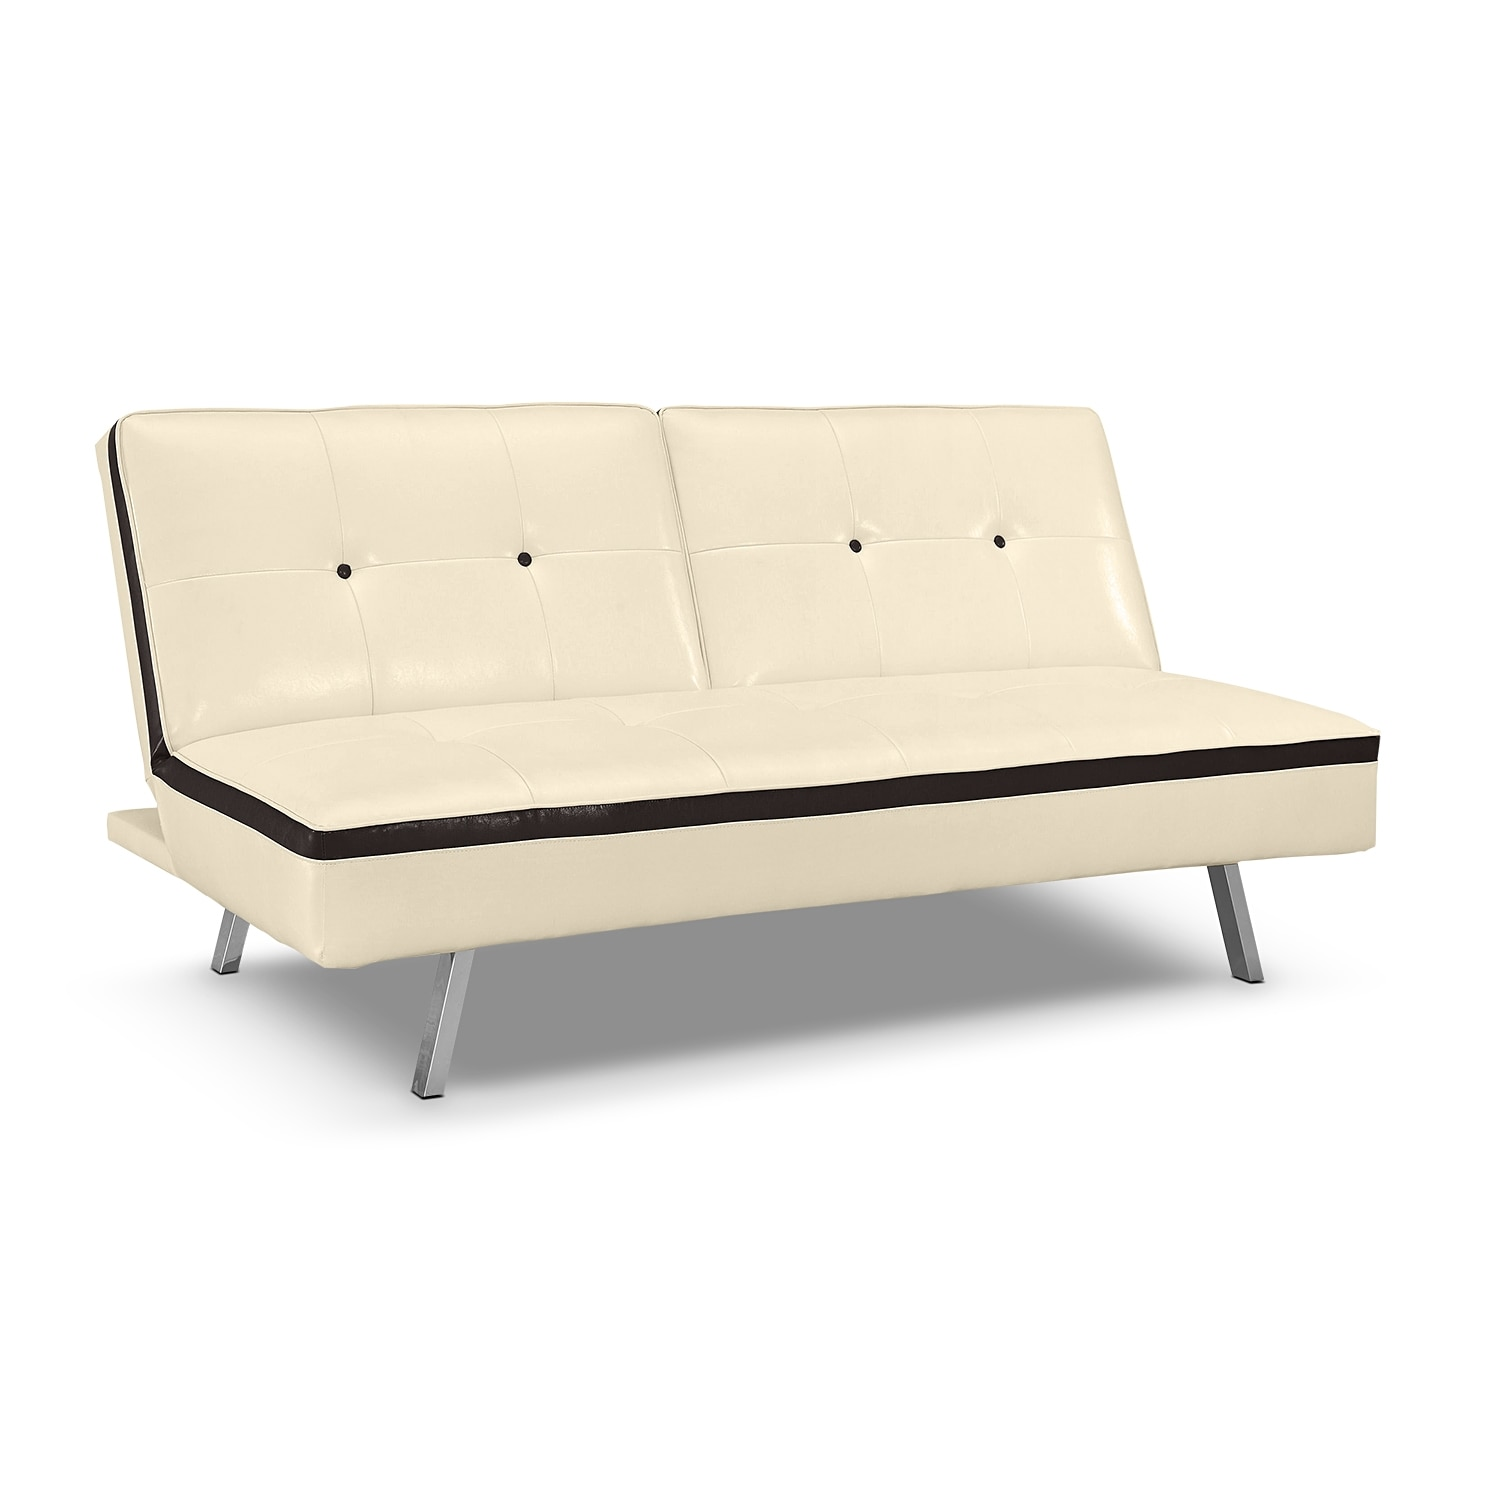 Costa Mesa Futon Sofa Bed